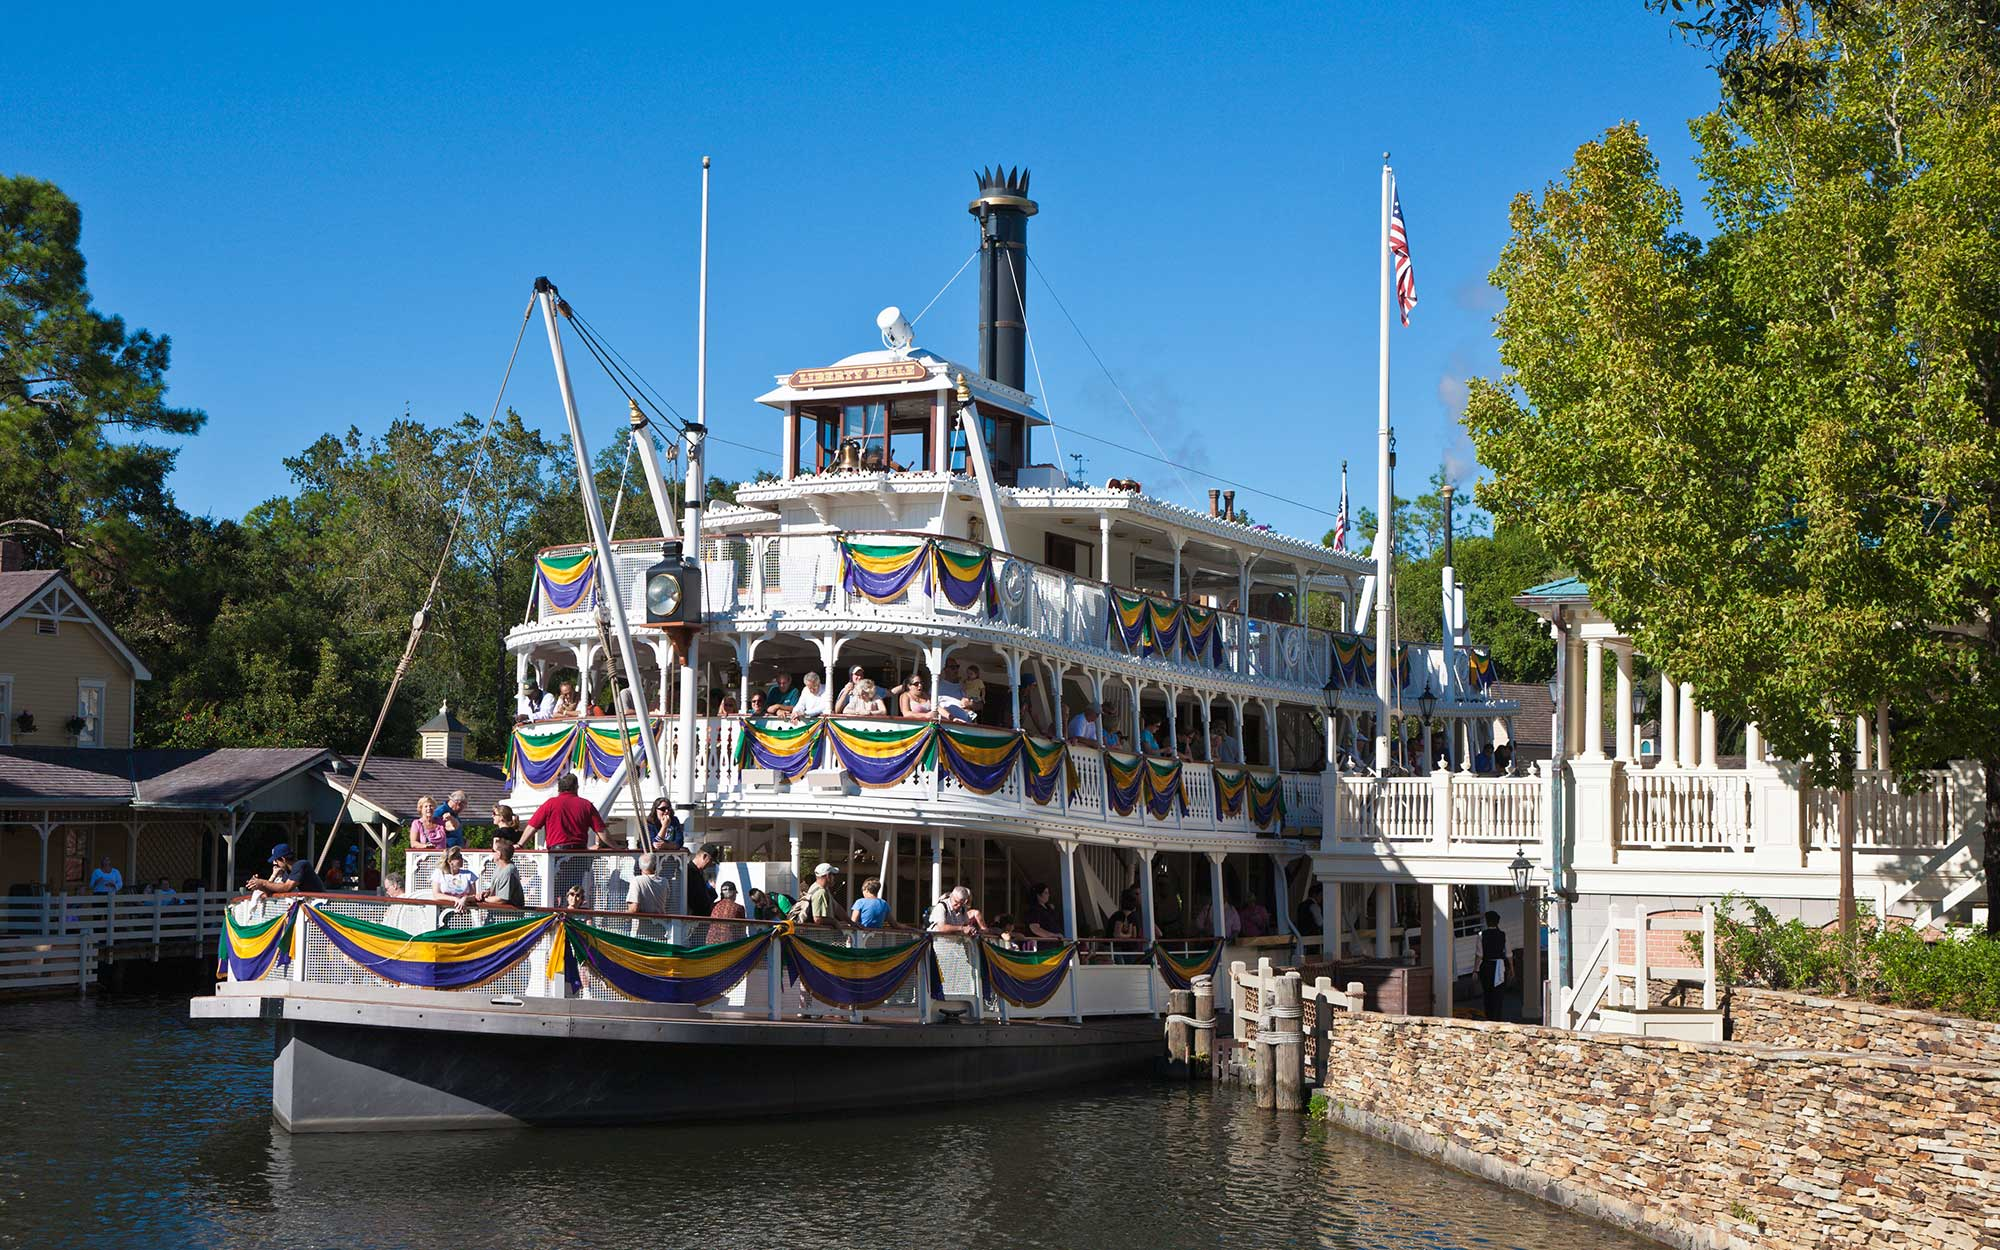 Former Disney Staffers Share Best Tips For Park Visits